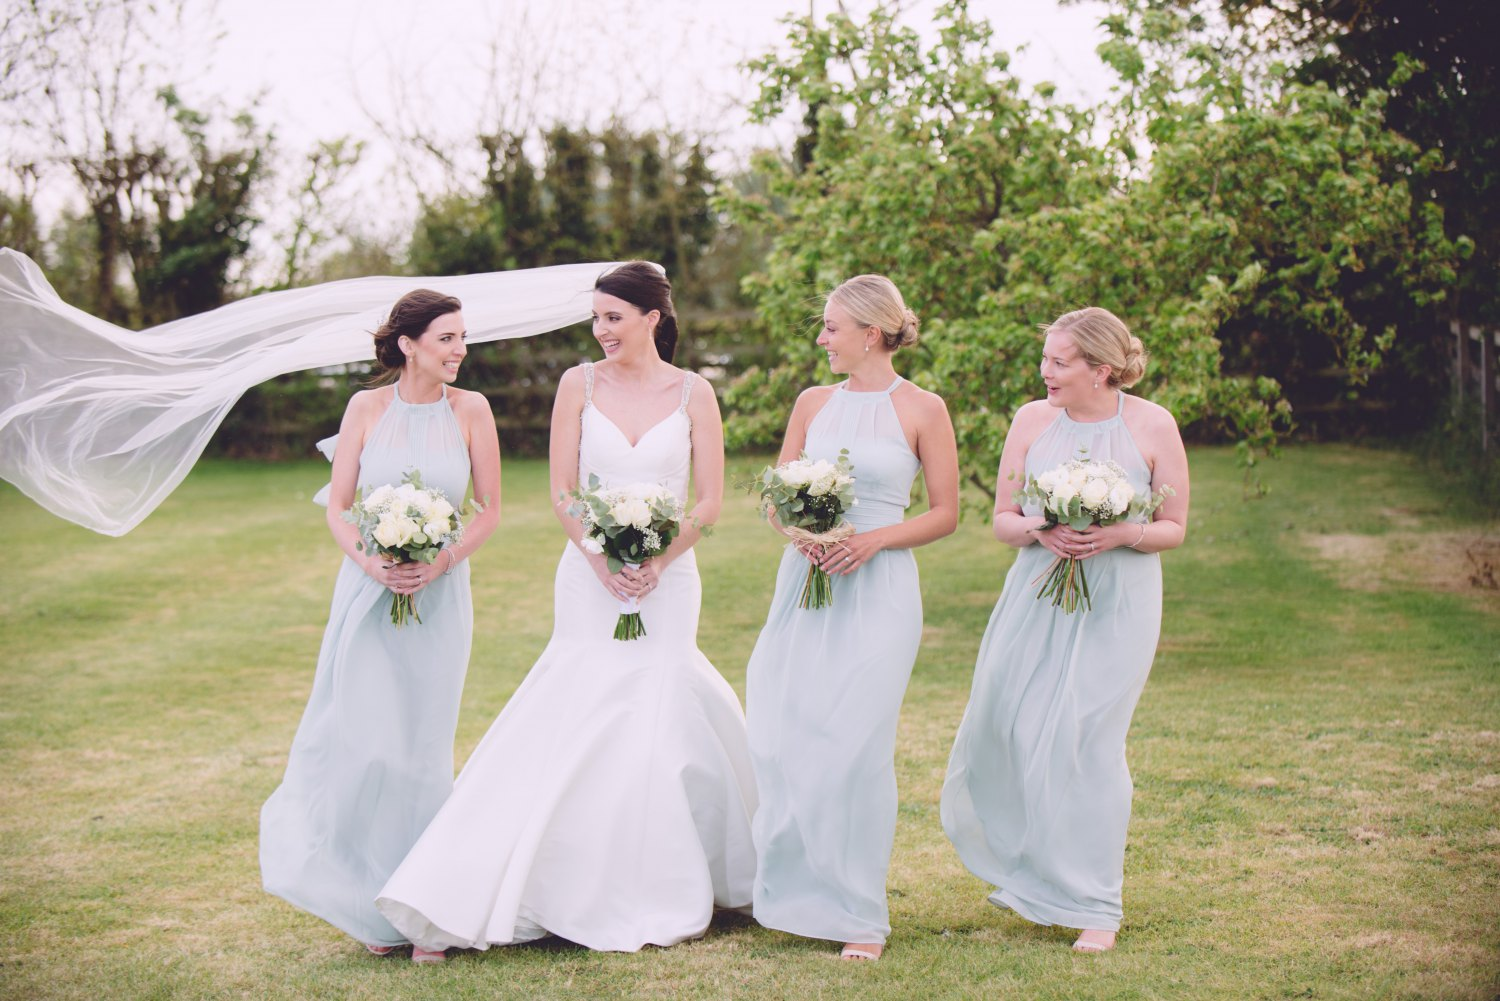 Best Bridesmaid Dress Styles 2021